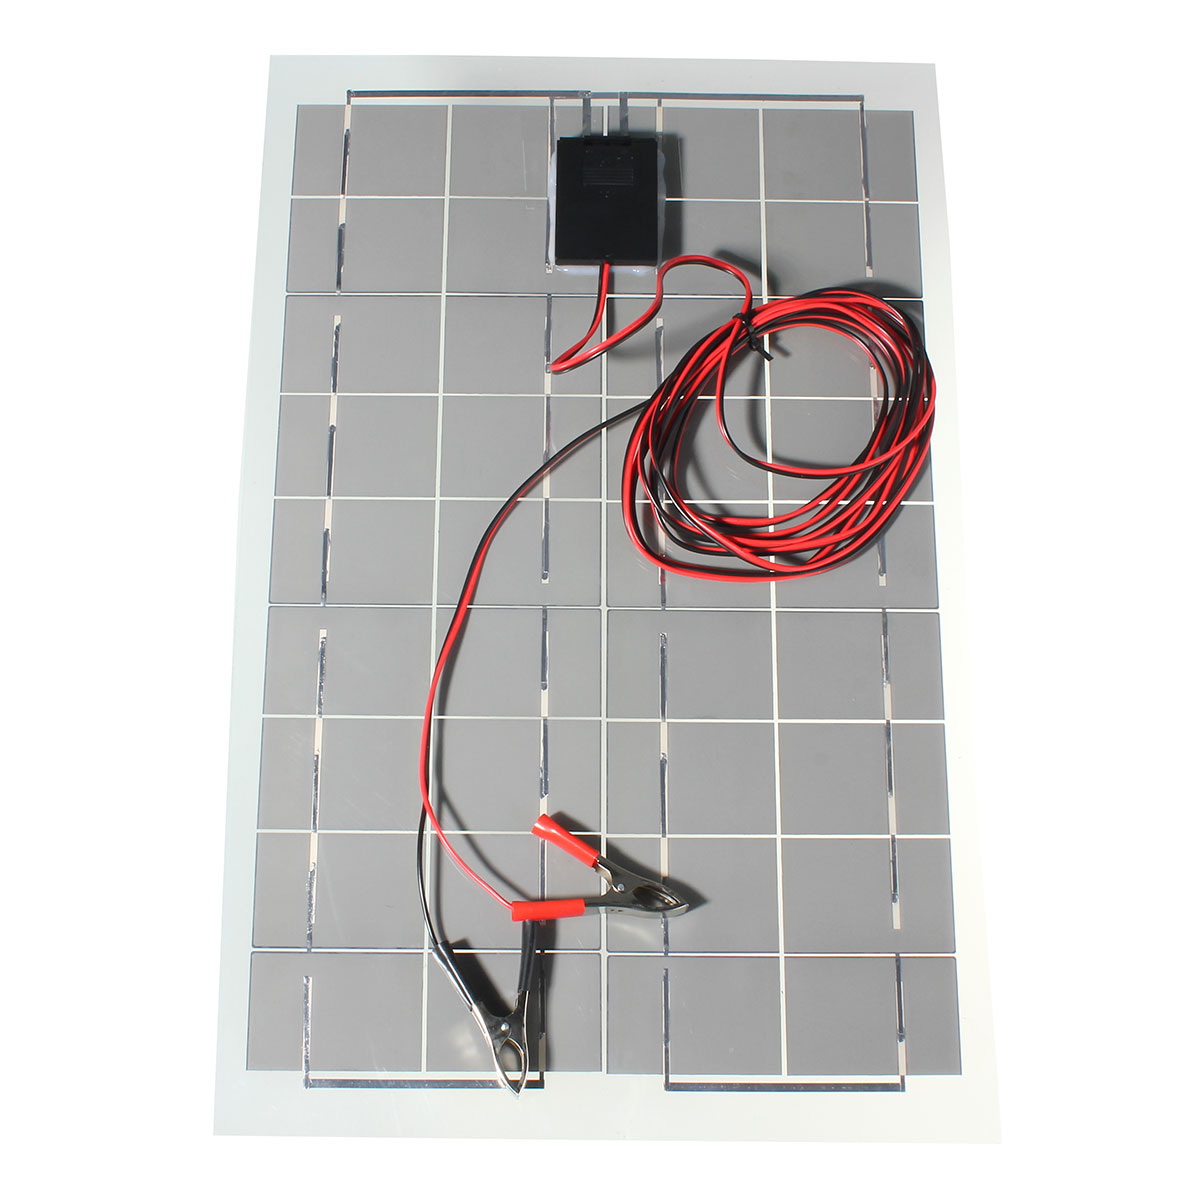 Newest Solor Power Polycrystalline Solar Cells Solar Panel Module Battery Charger with Alligator Clips + Cable 5W/10W/20W/30W